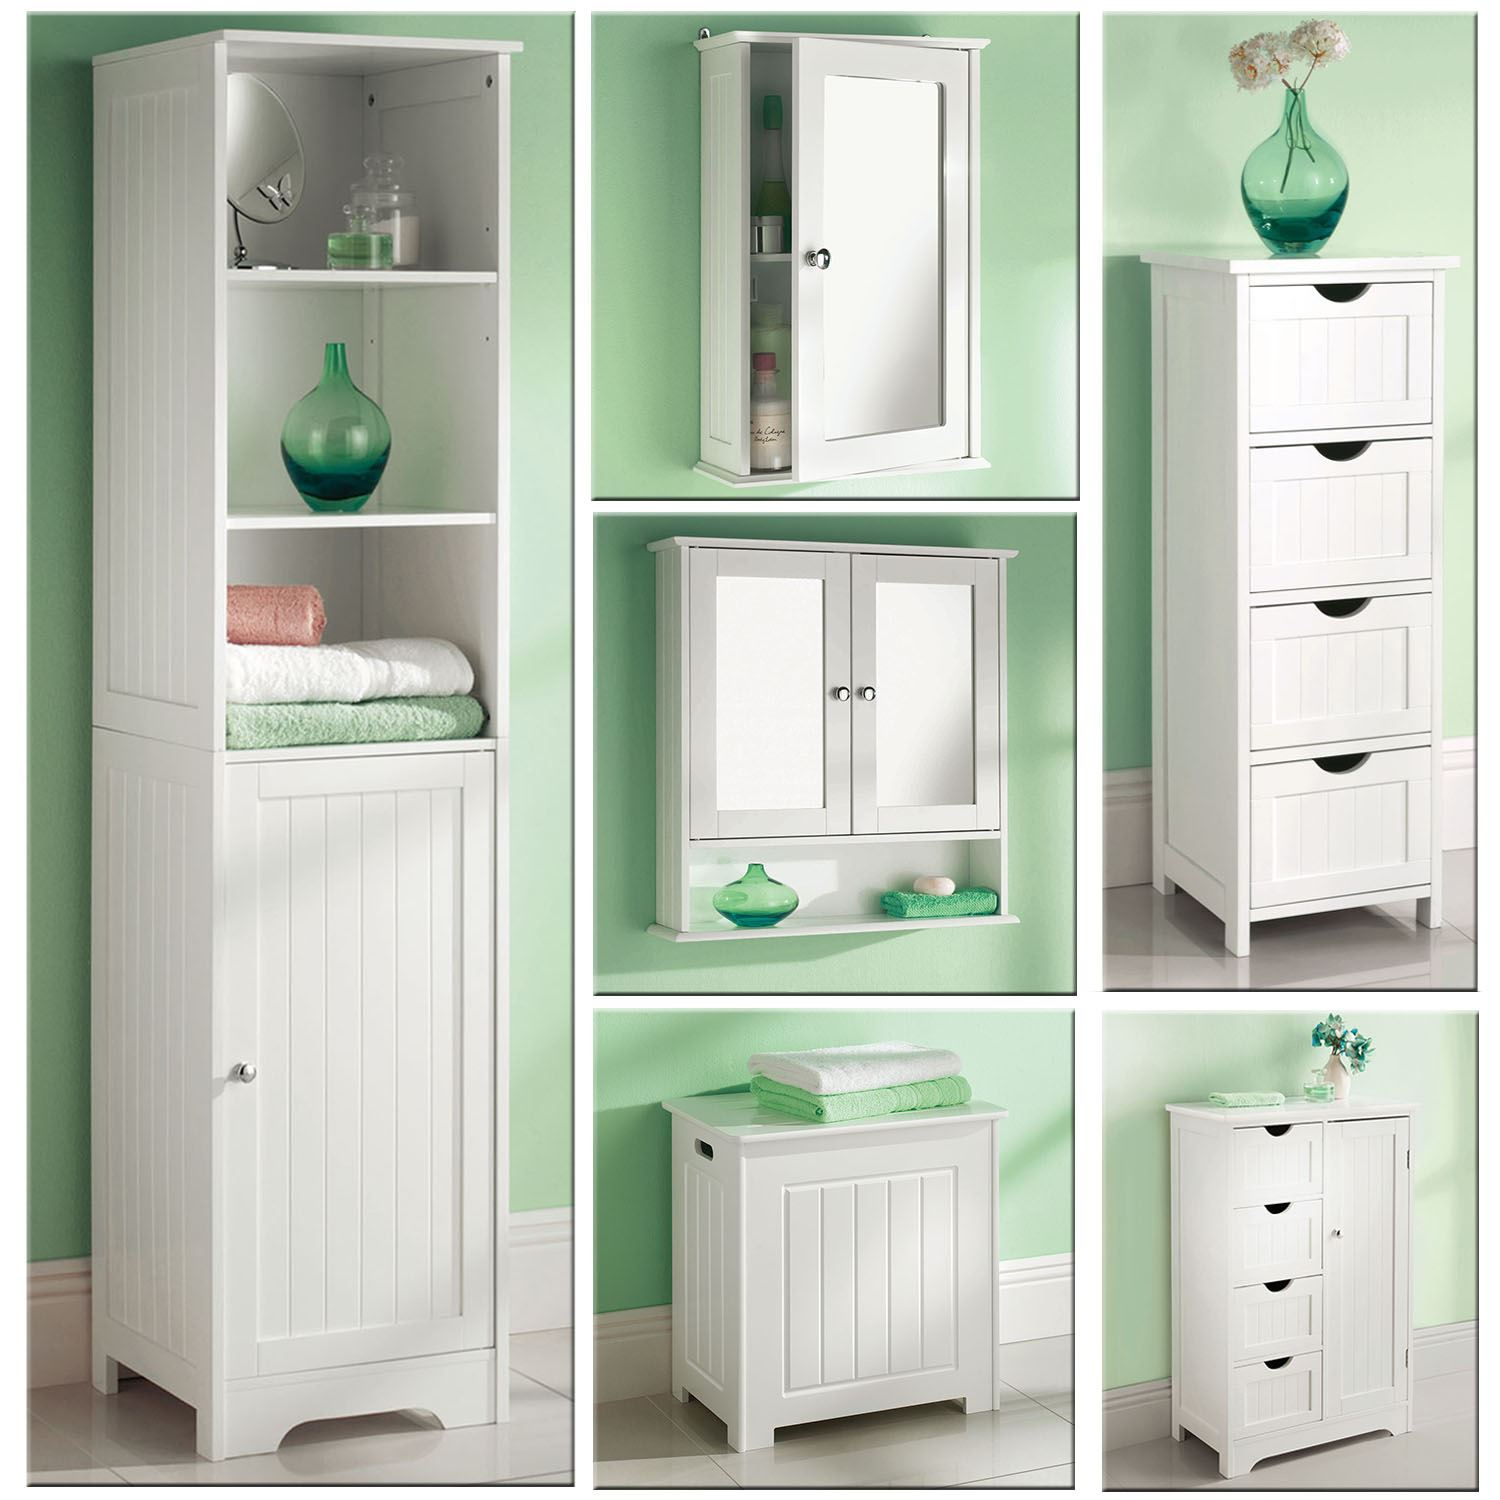 White wooden bathroom cabinet shelf cupboard bedroom - Wall mounted bathroom storage units ...